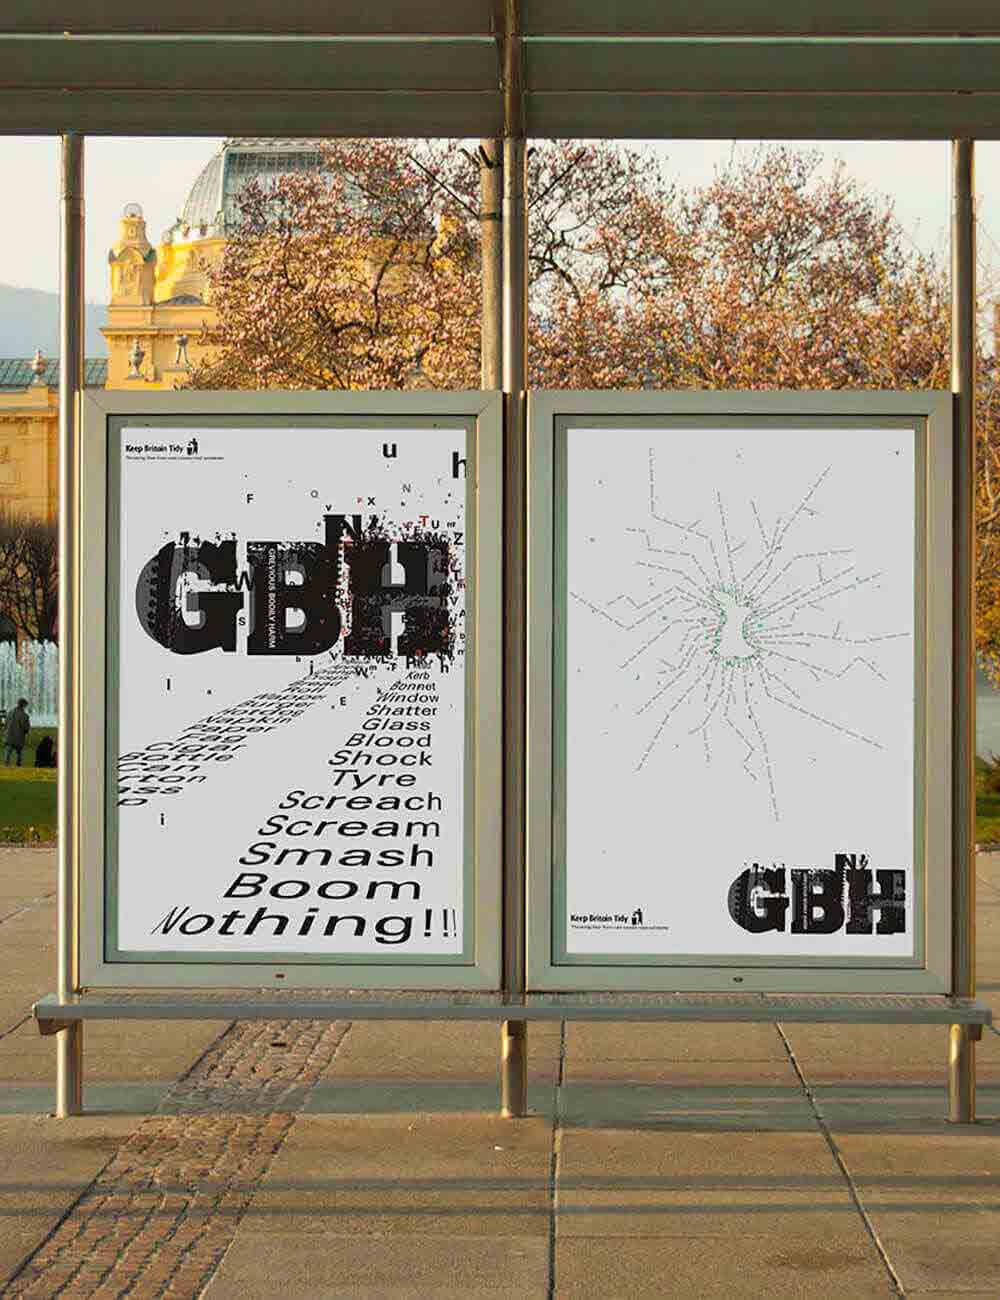 Grievous Bodily Harm Advertising Campaign